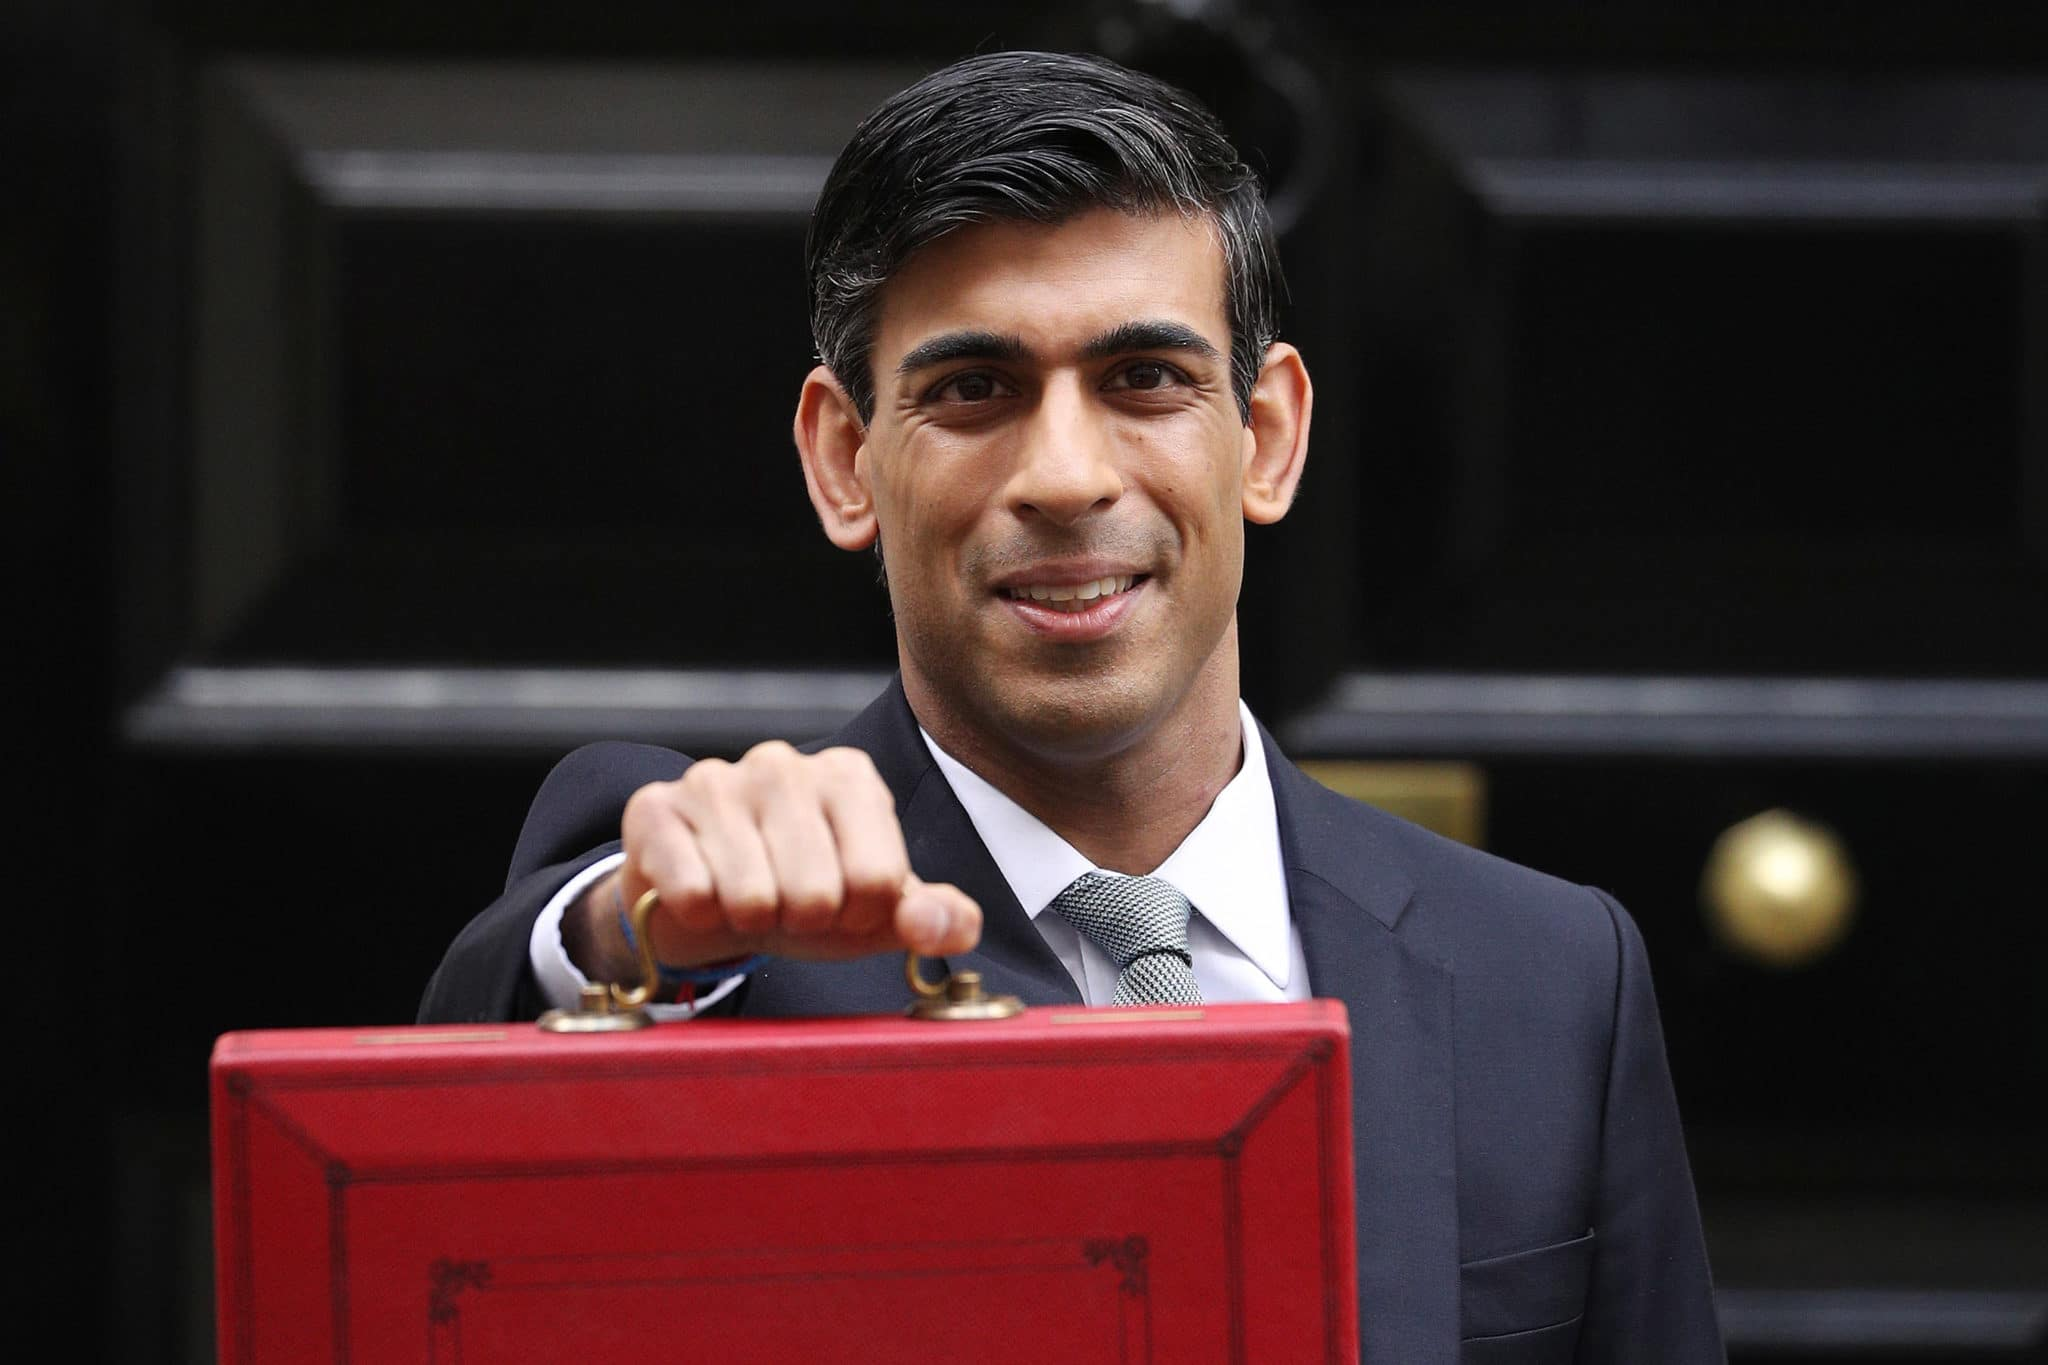 Chancellor Rishi Sunak's cuts to the aid budget must not undermine work on HIV/AIDS